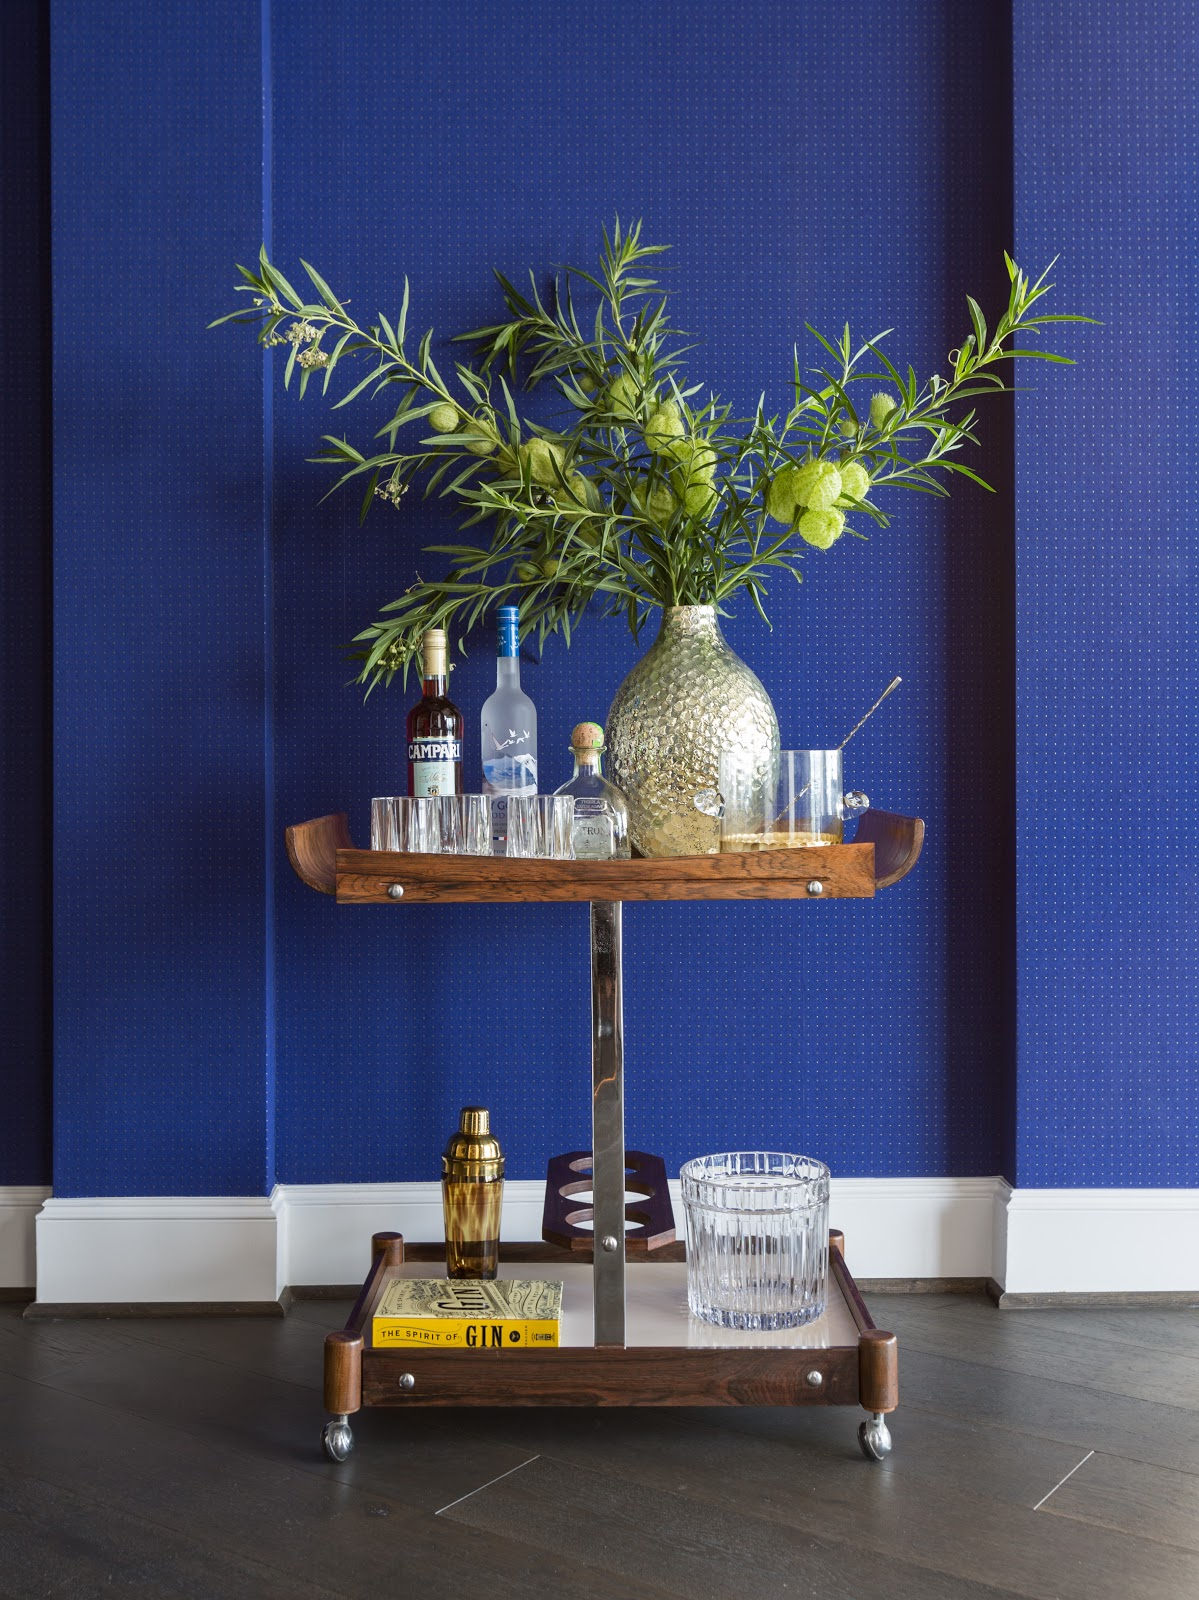 Cobalt blue bar cart with vintage spirits and barware - Laura U Interior Design